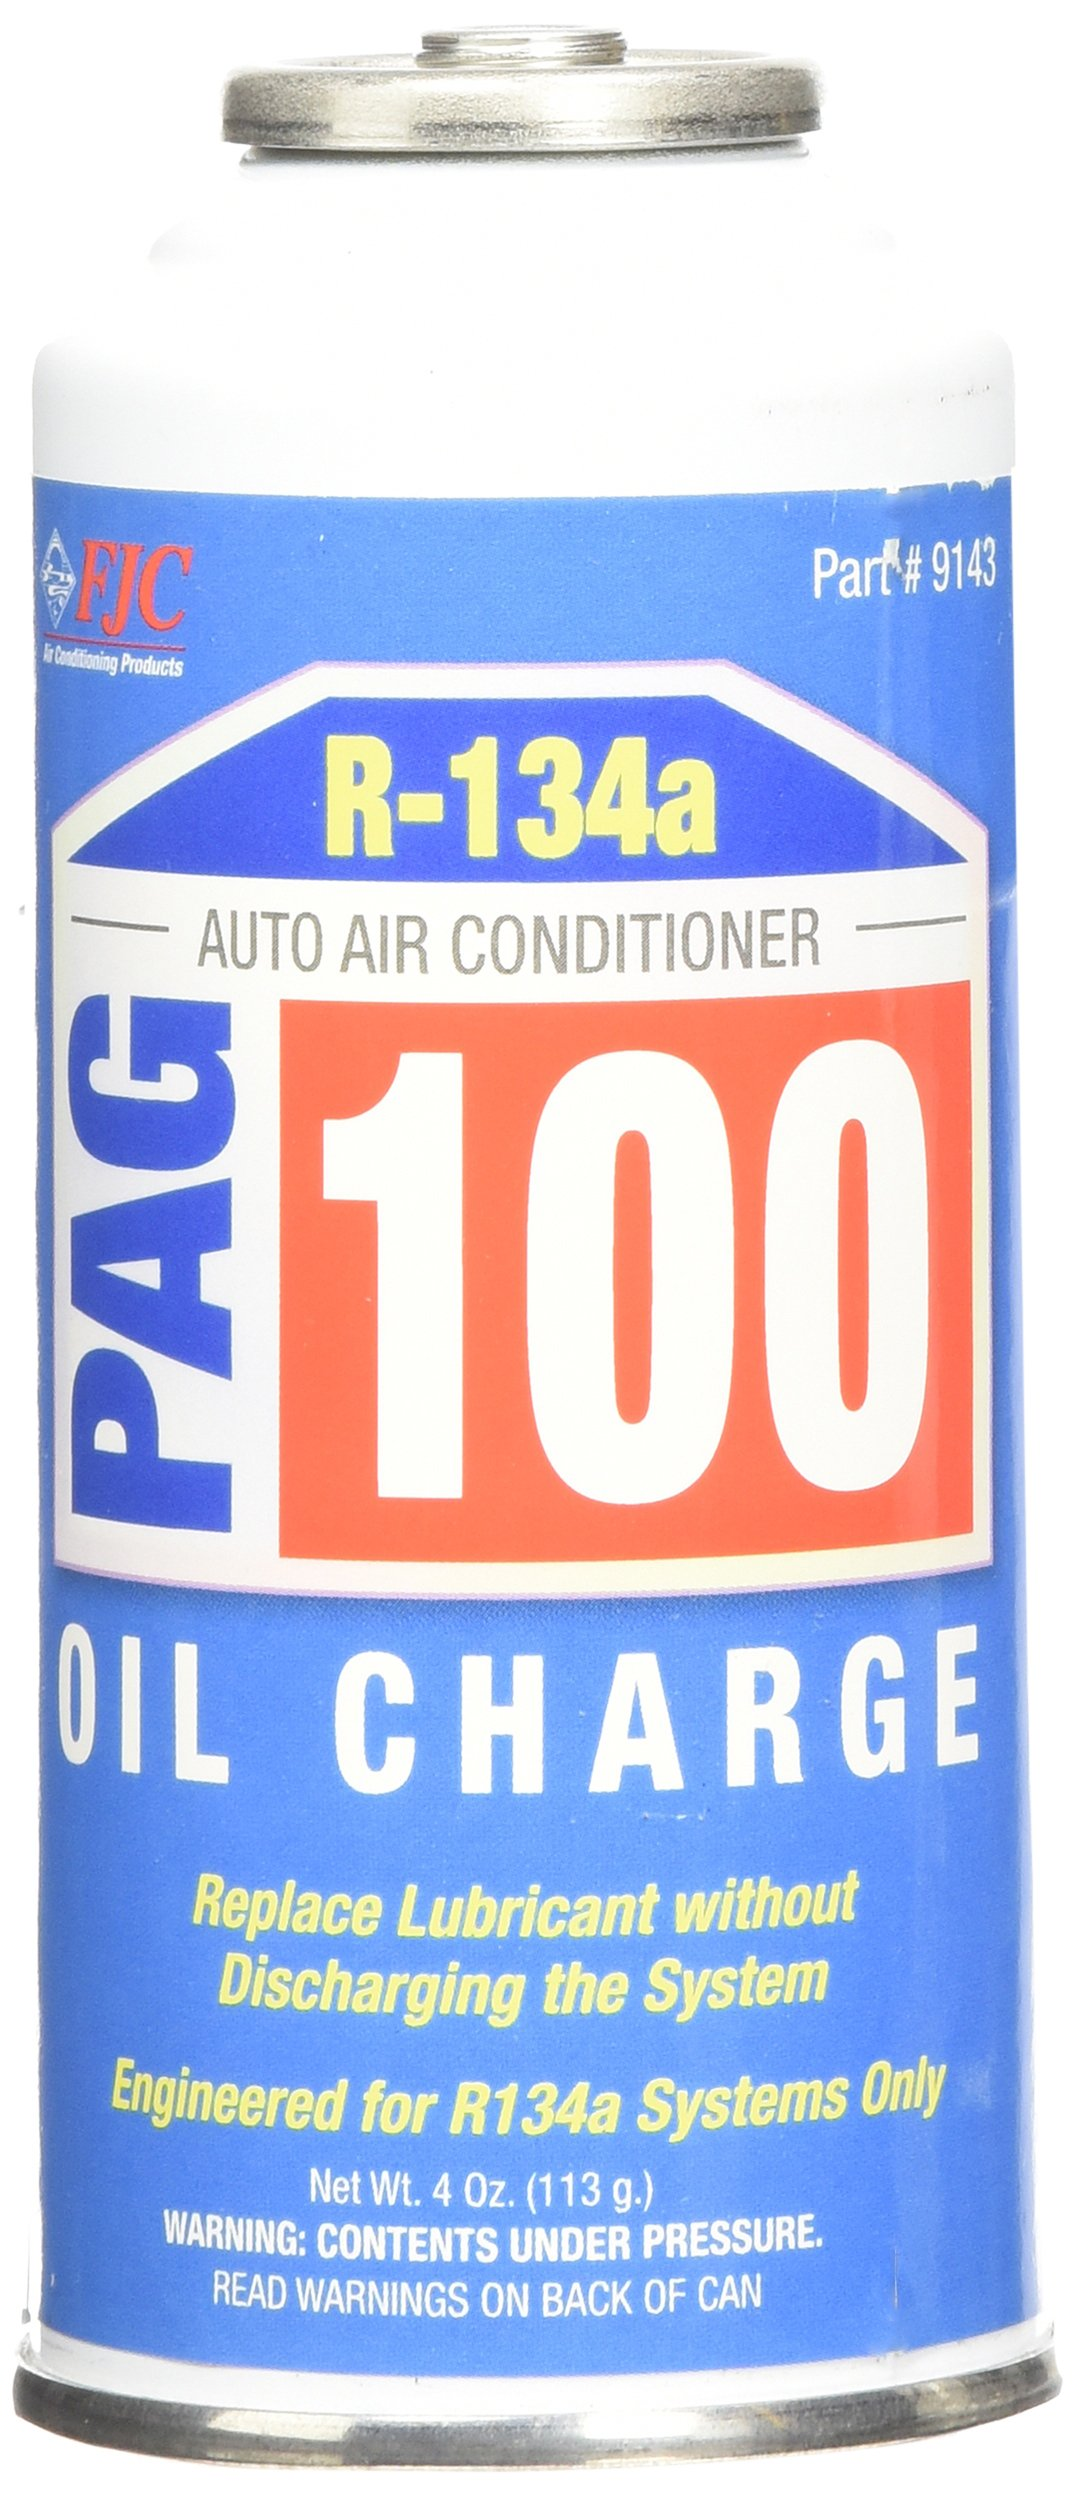 FJC 9143 PAG Oil Charge - 4 oz.